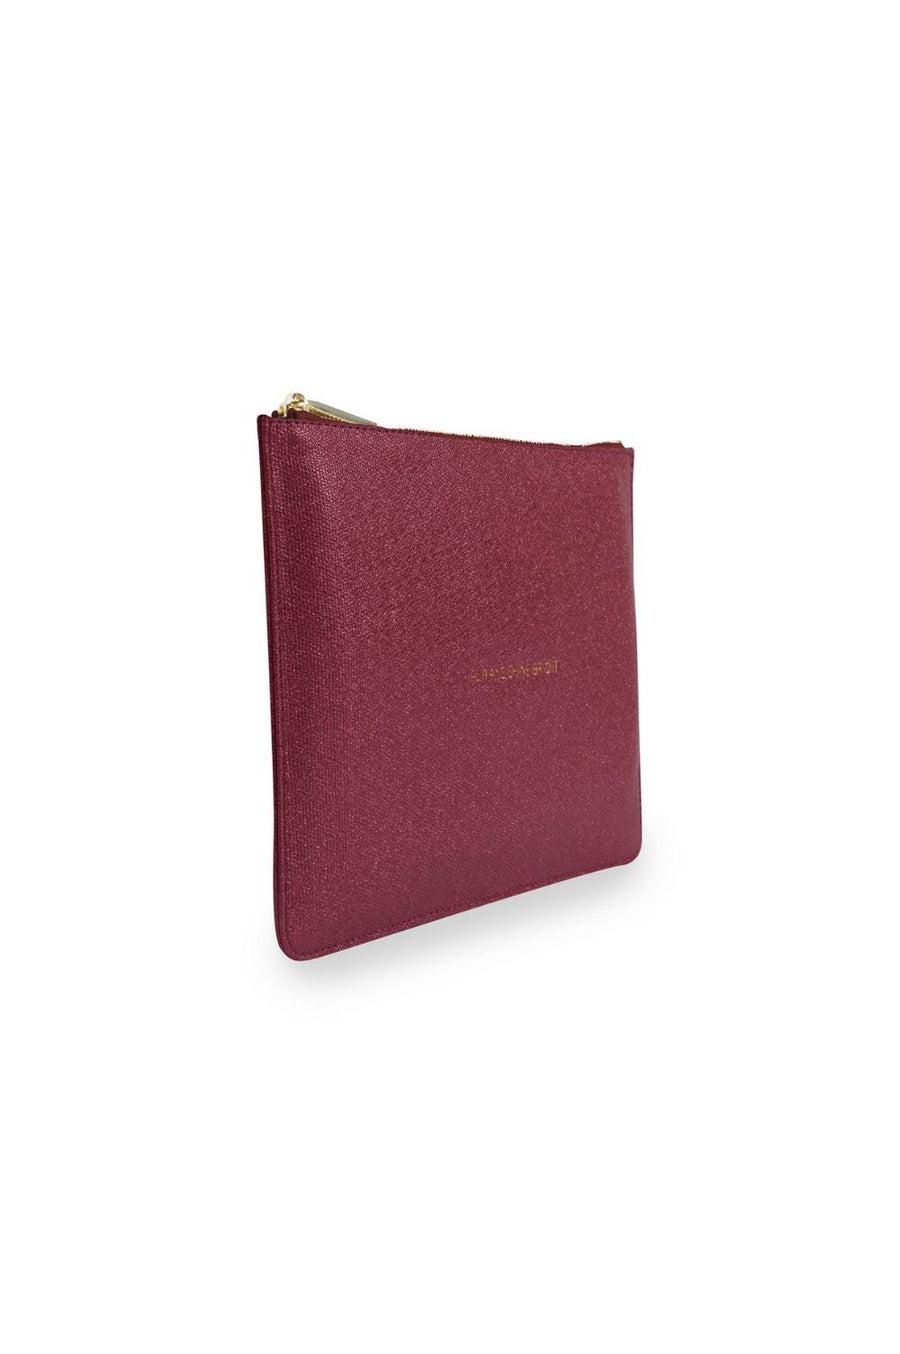 Katie Loxton 'Always Shine Bright' Perfect Pouch